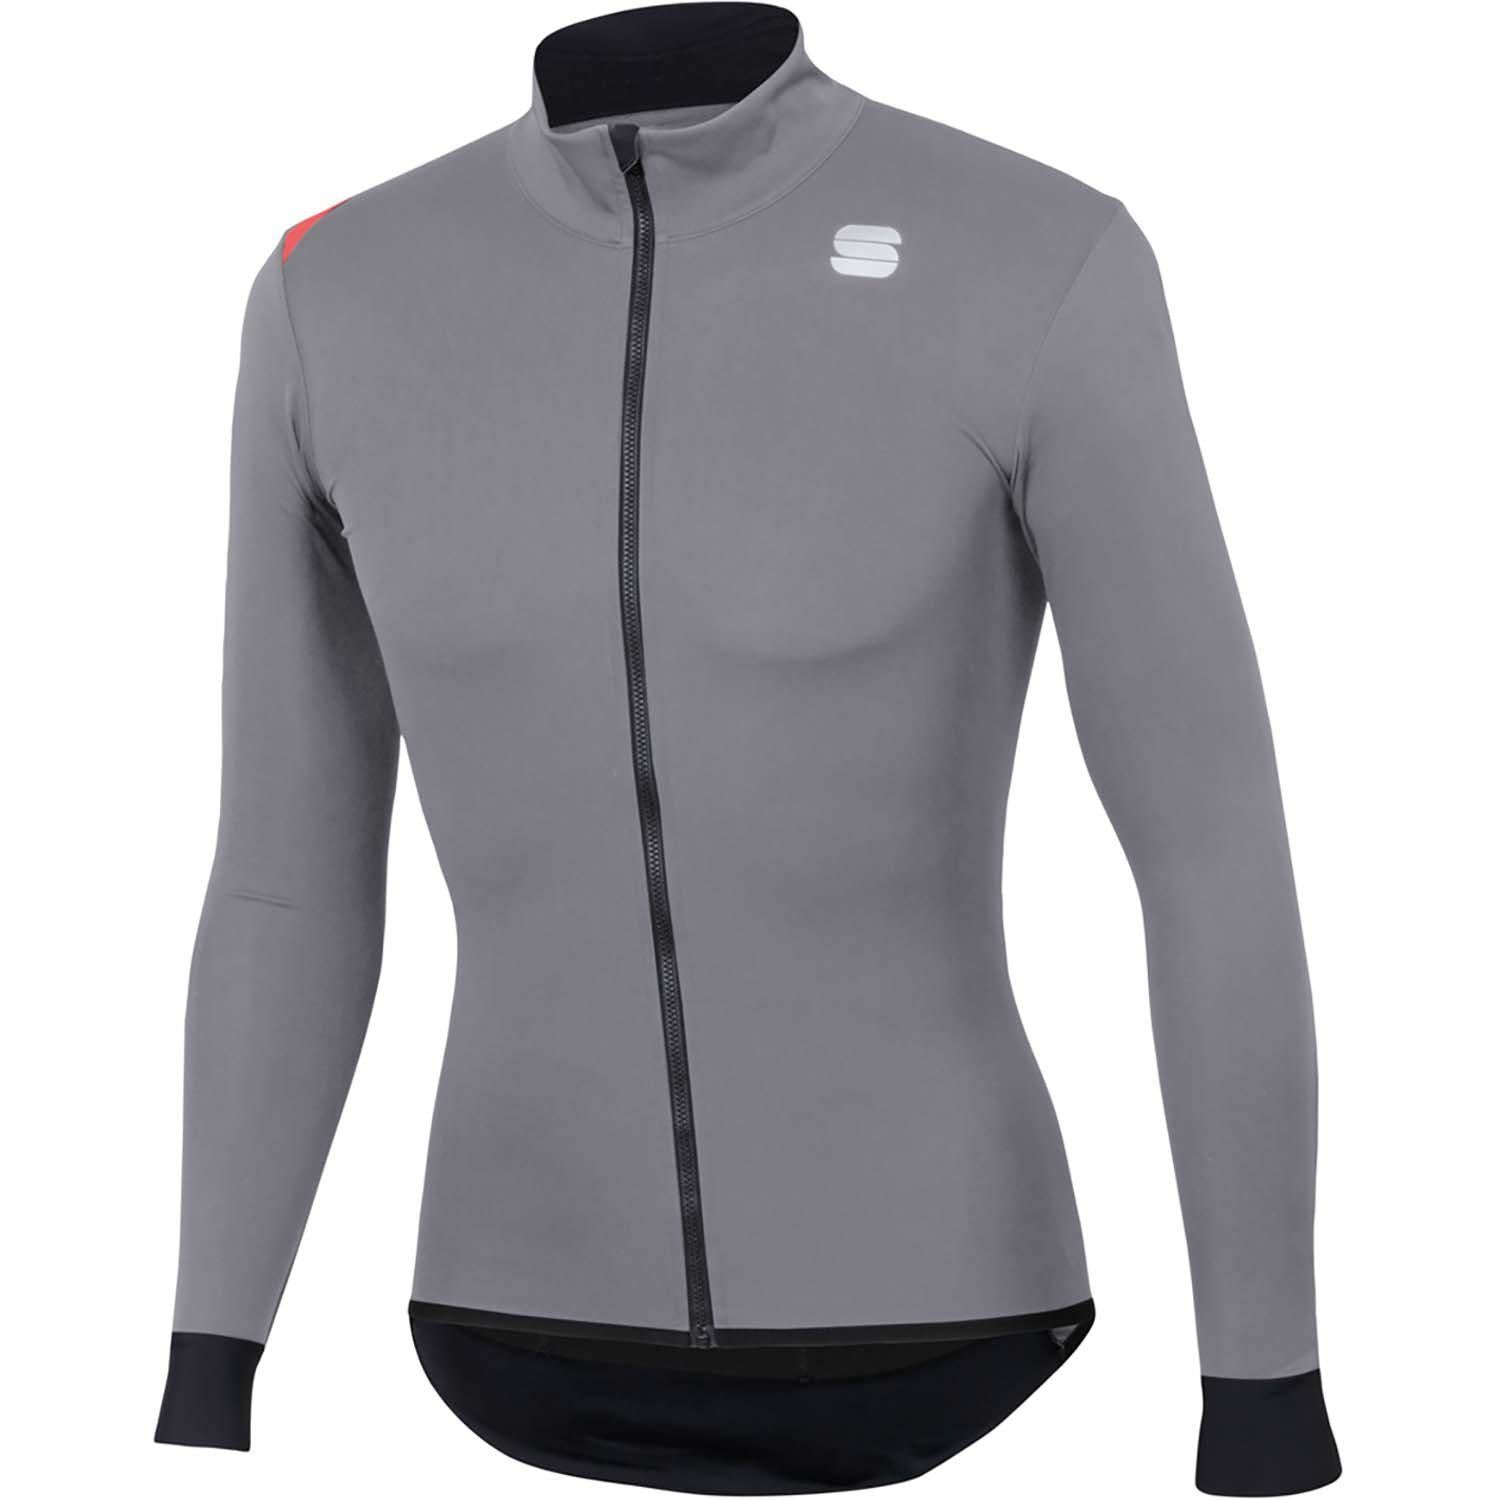 Sportful-Sportful Fiandre Light NoRain Jacket-Cement-S-SF200212502-saddleback-elite-performance-cycling